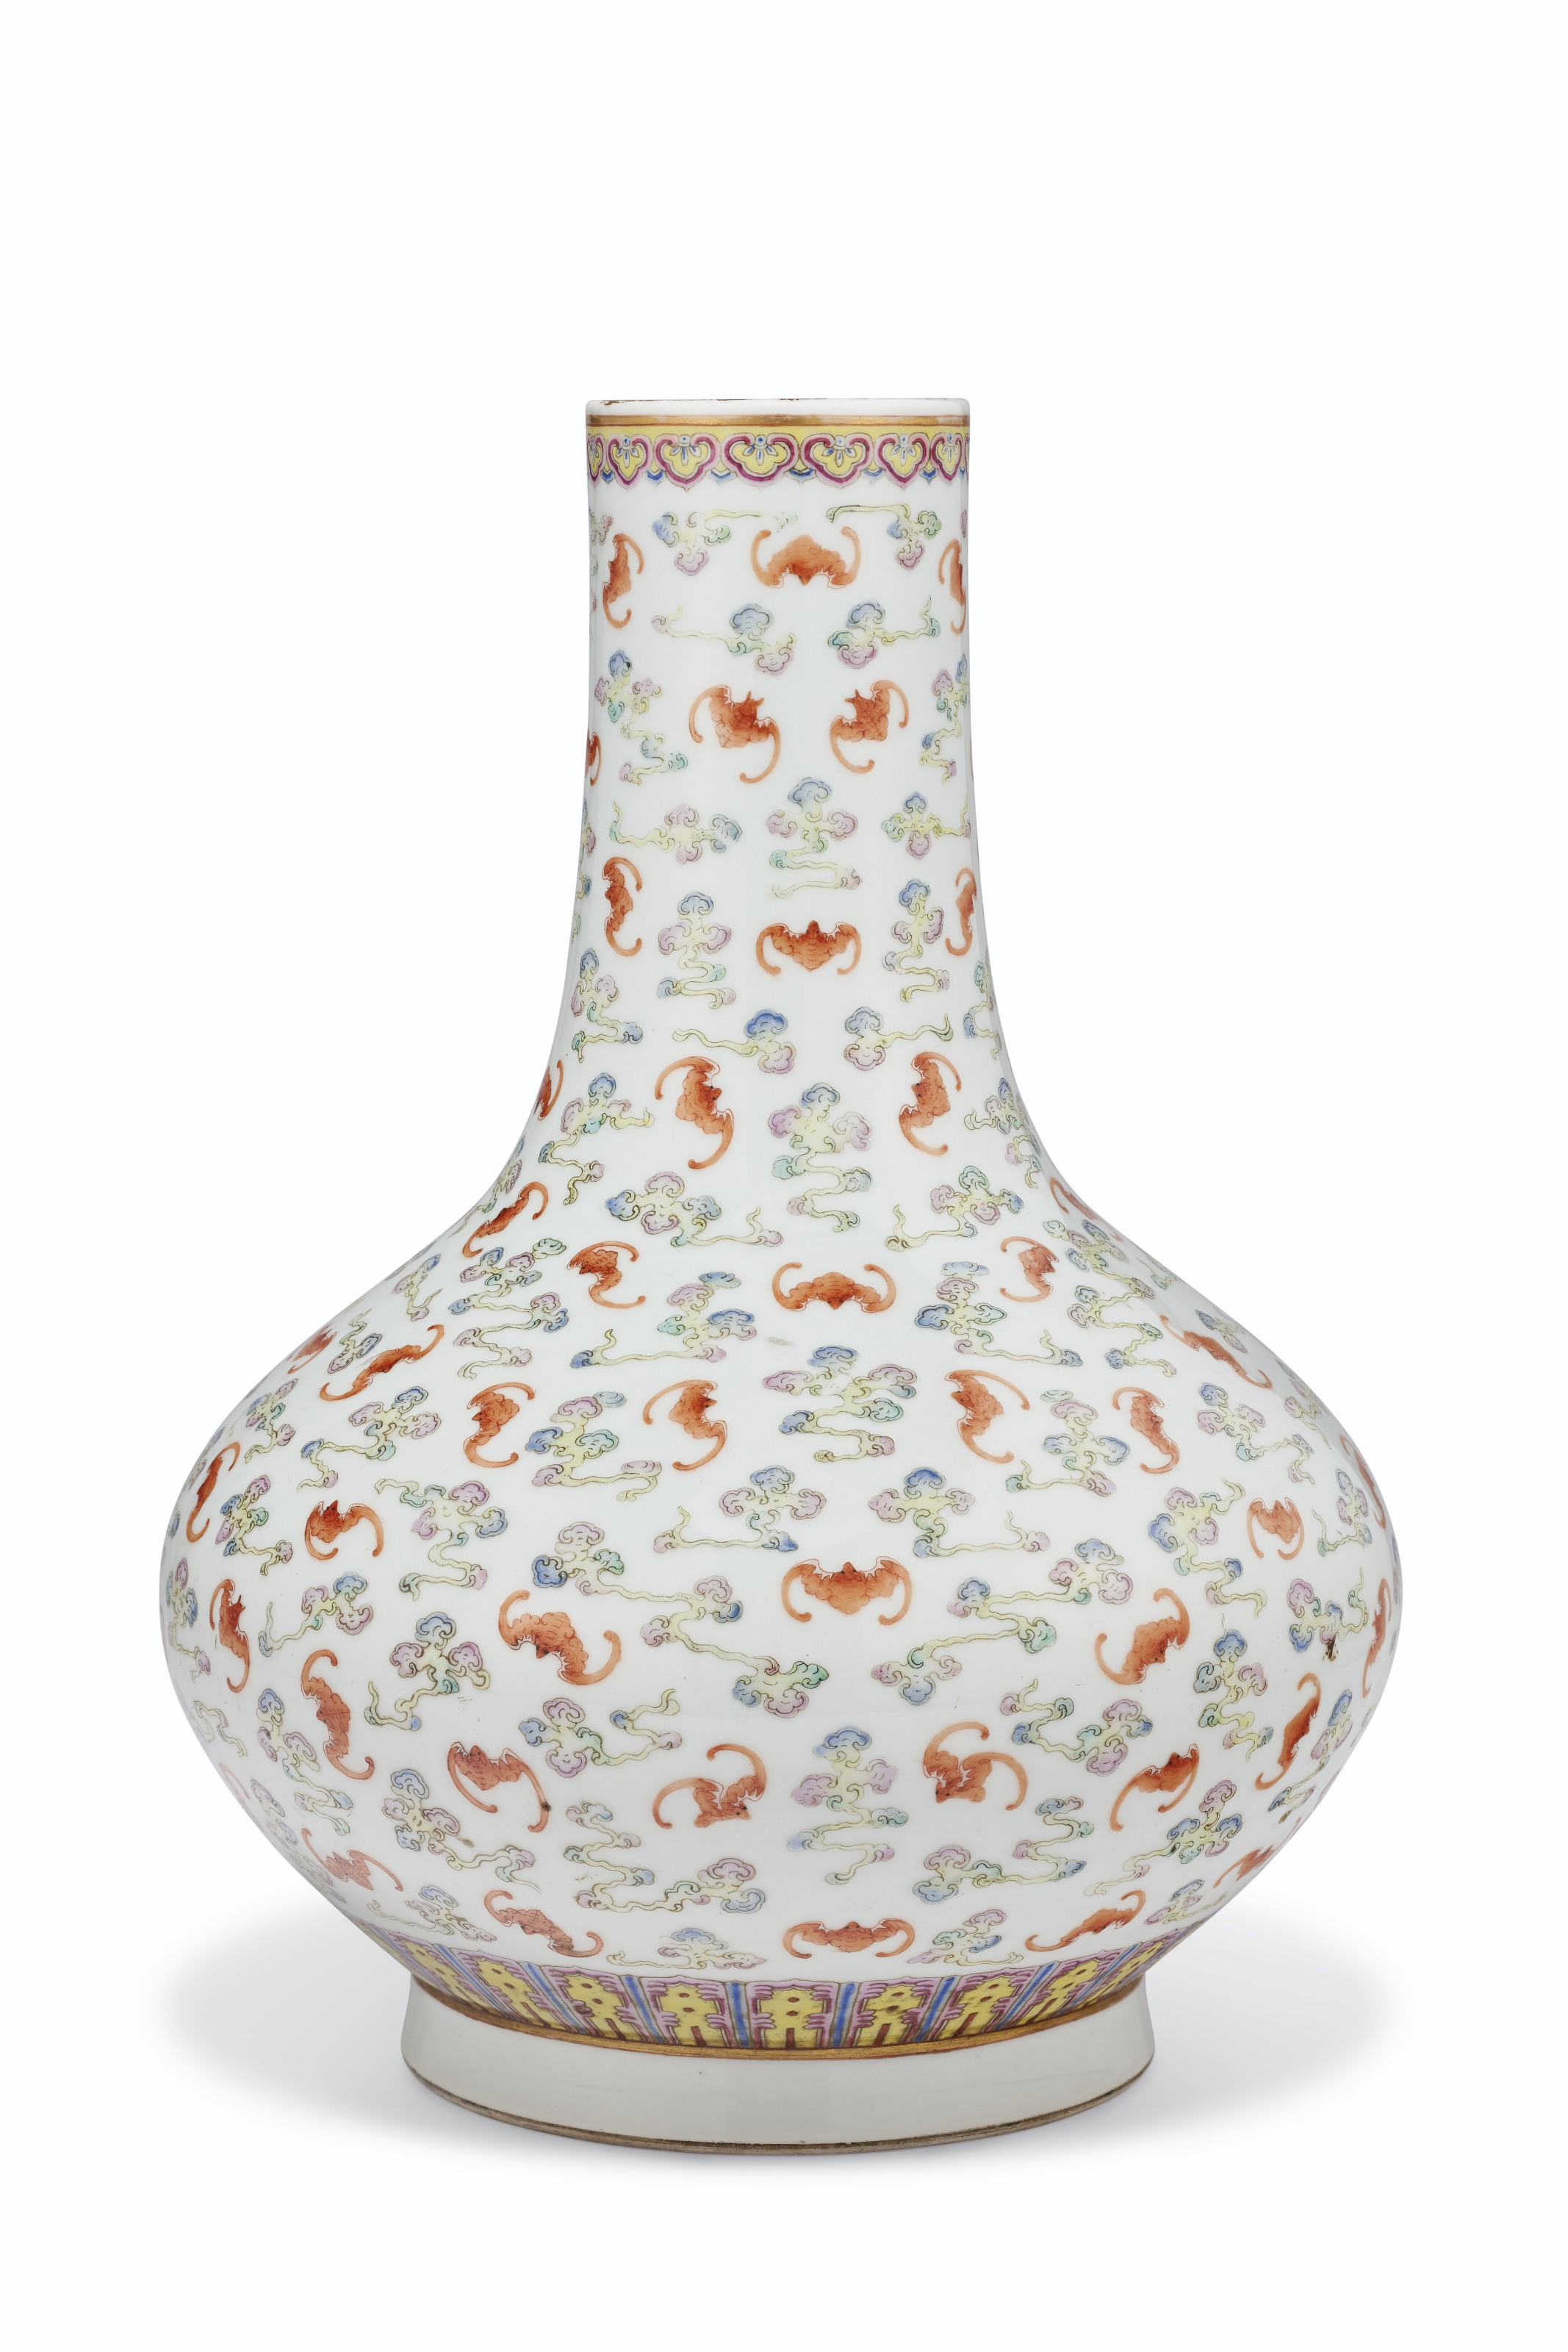 A FAMILLE ROSE 'HUNDRED BATS' BOTTLE VASE